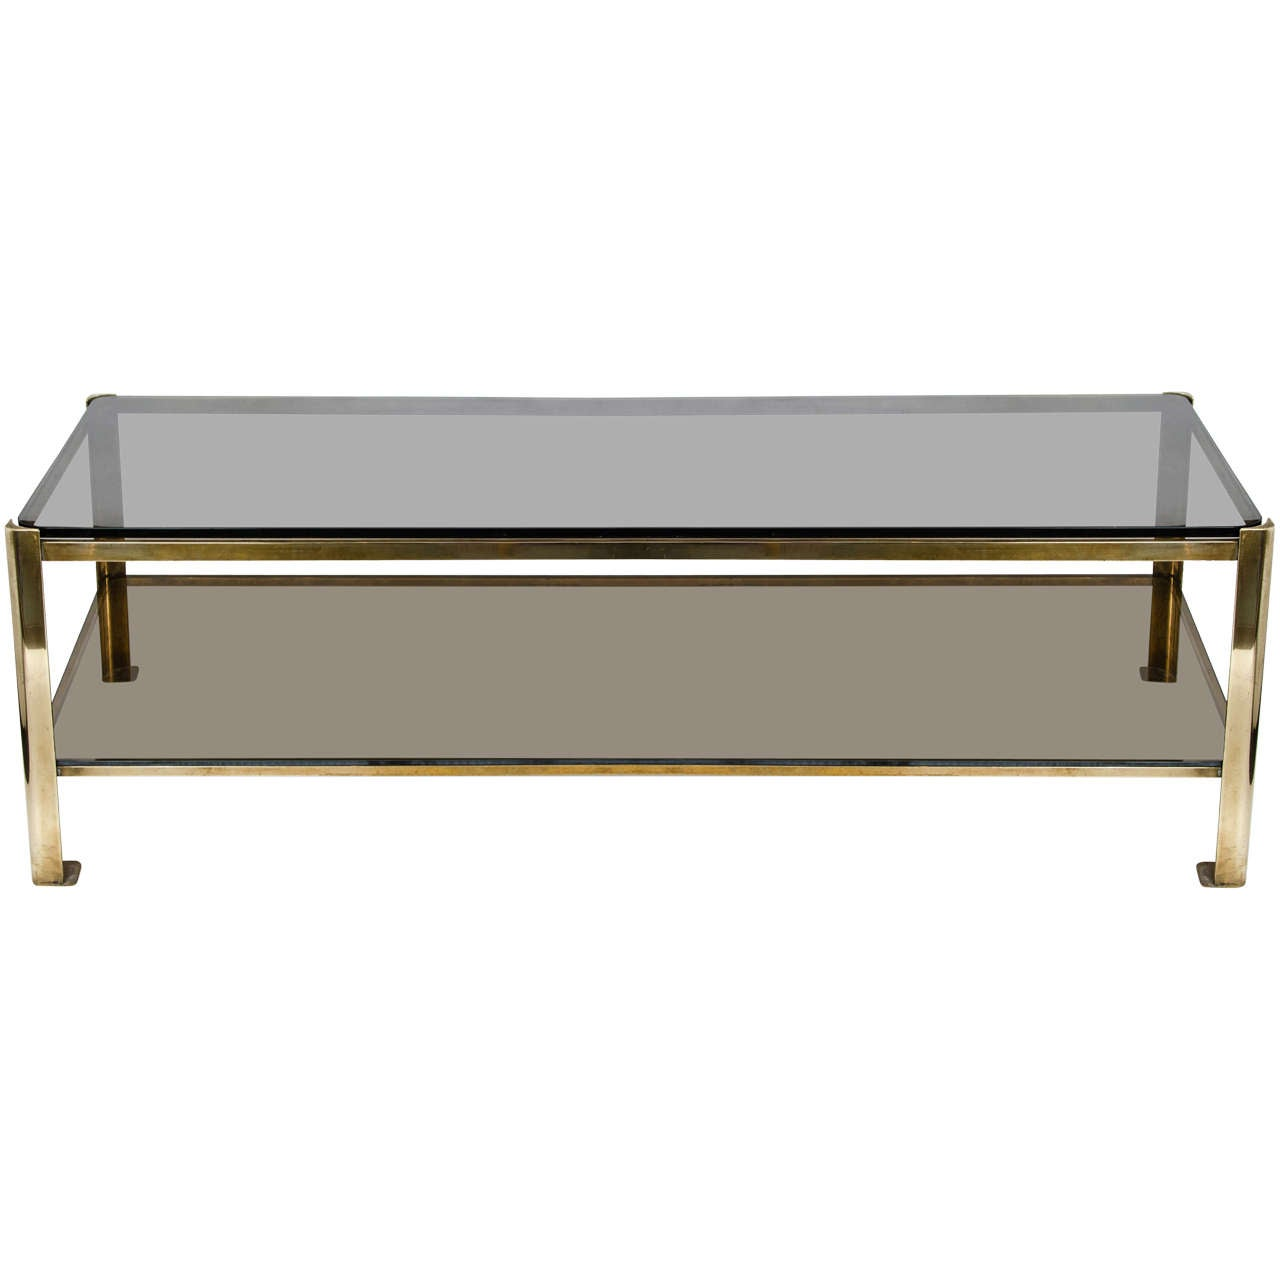 1950s French Jacque Quinet Coffee Table II